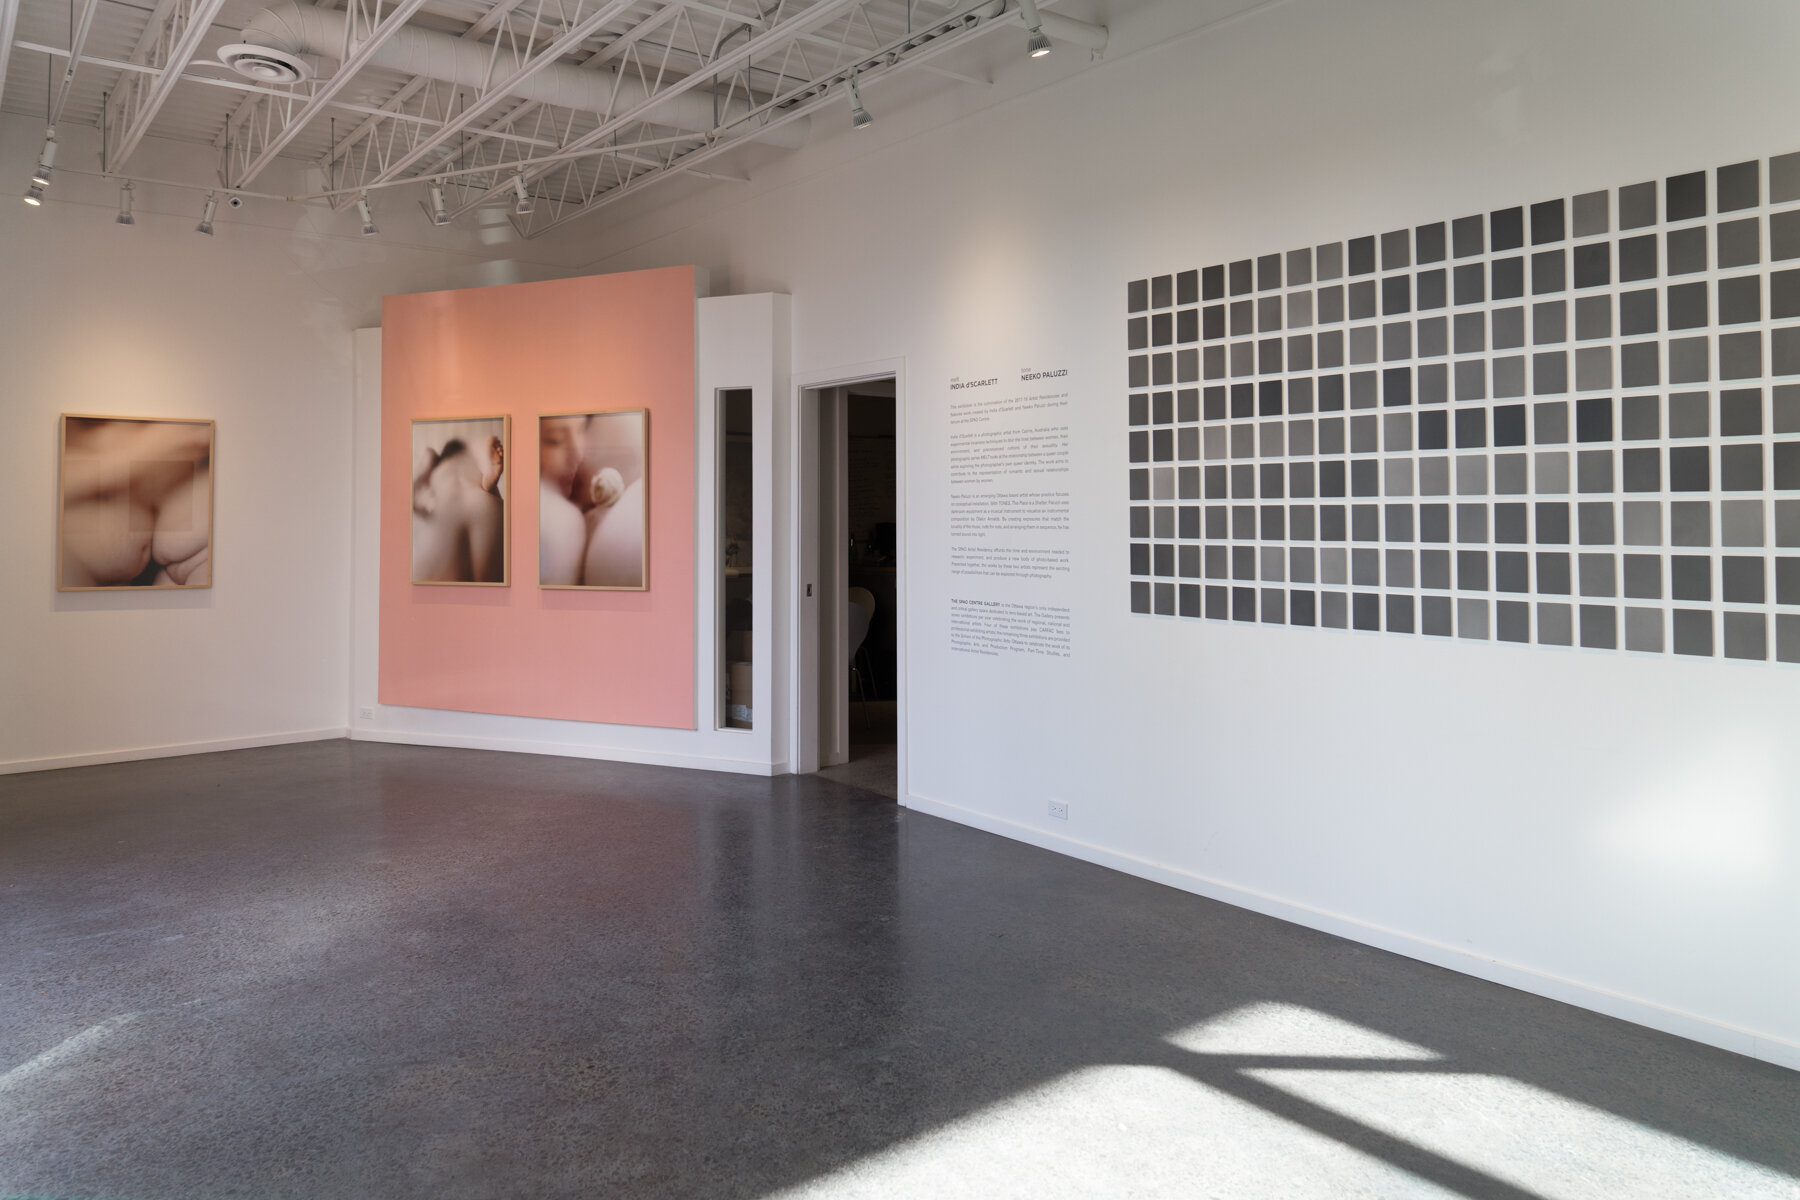 SPAO's 2018 Artist in Residence exhibition, featuring work by India d'Scarlett and Neeko Paluzzi (installation view)